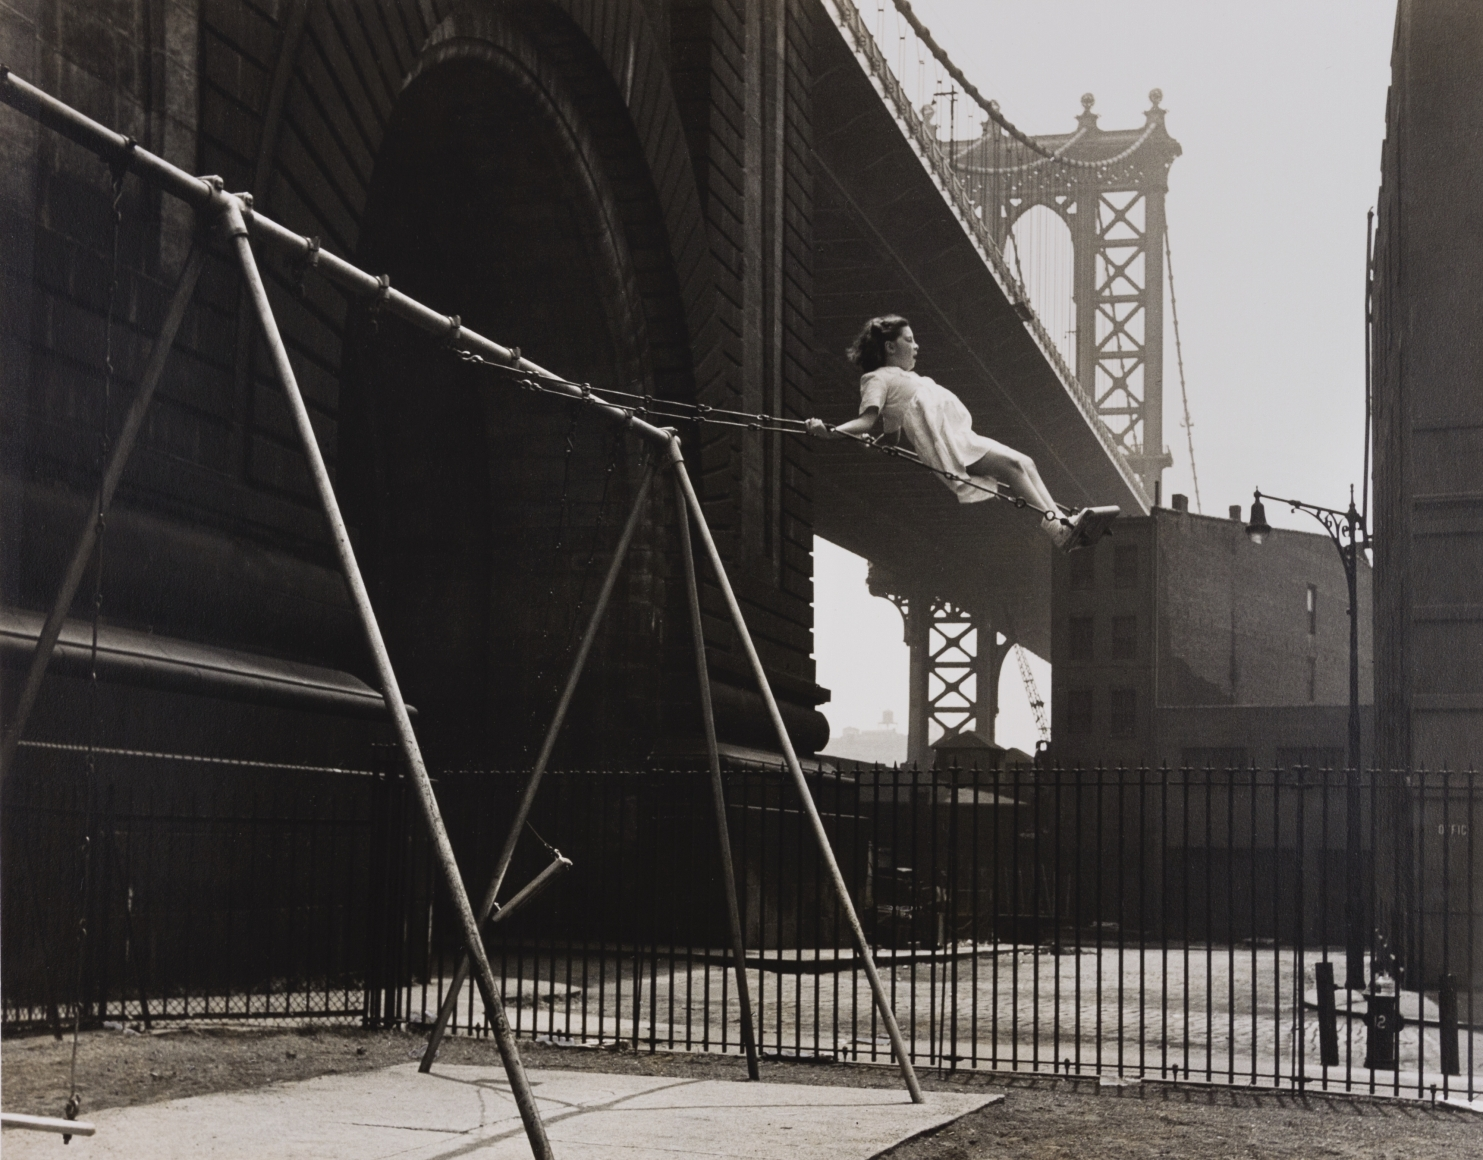 Walter Rosenblum, Girl on a Swing, 1938, gelatin silver print, 11 × 14 in.